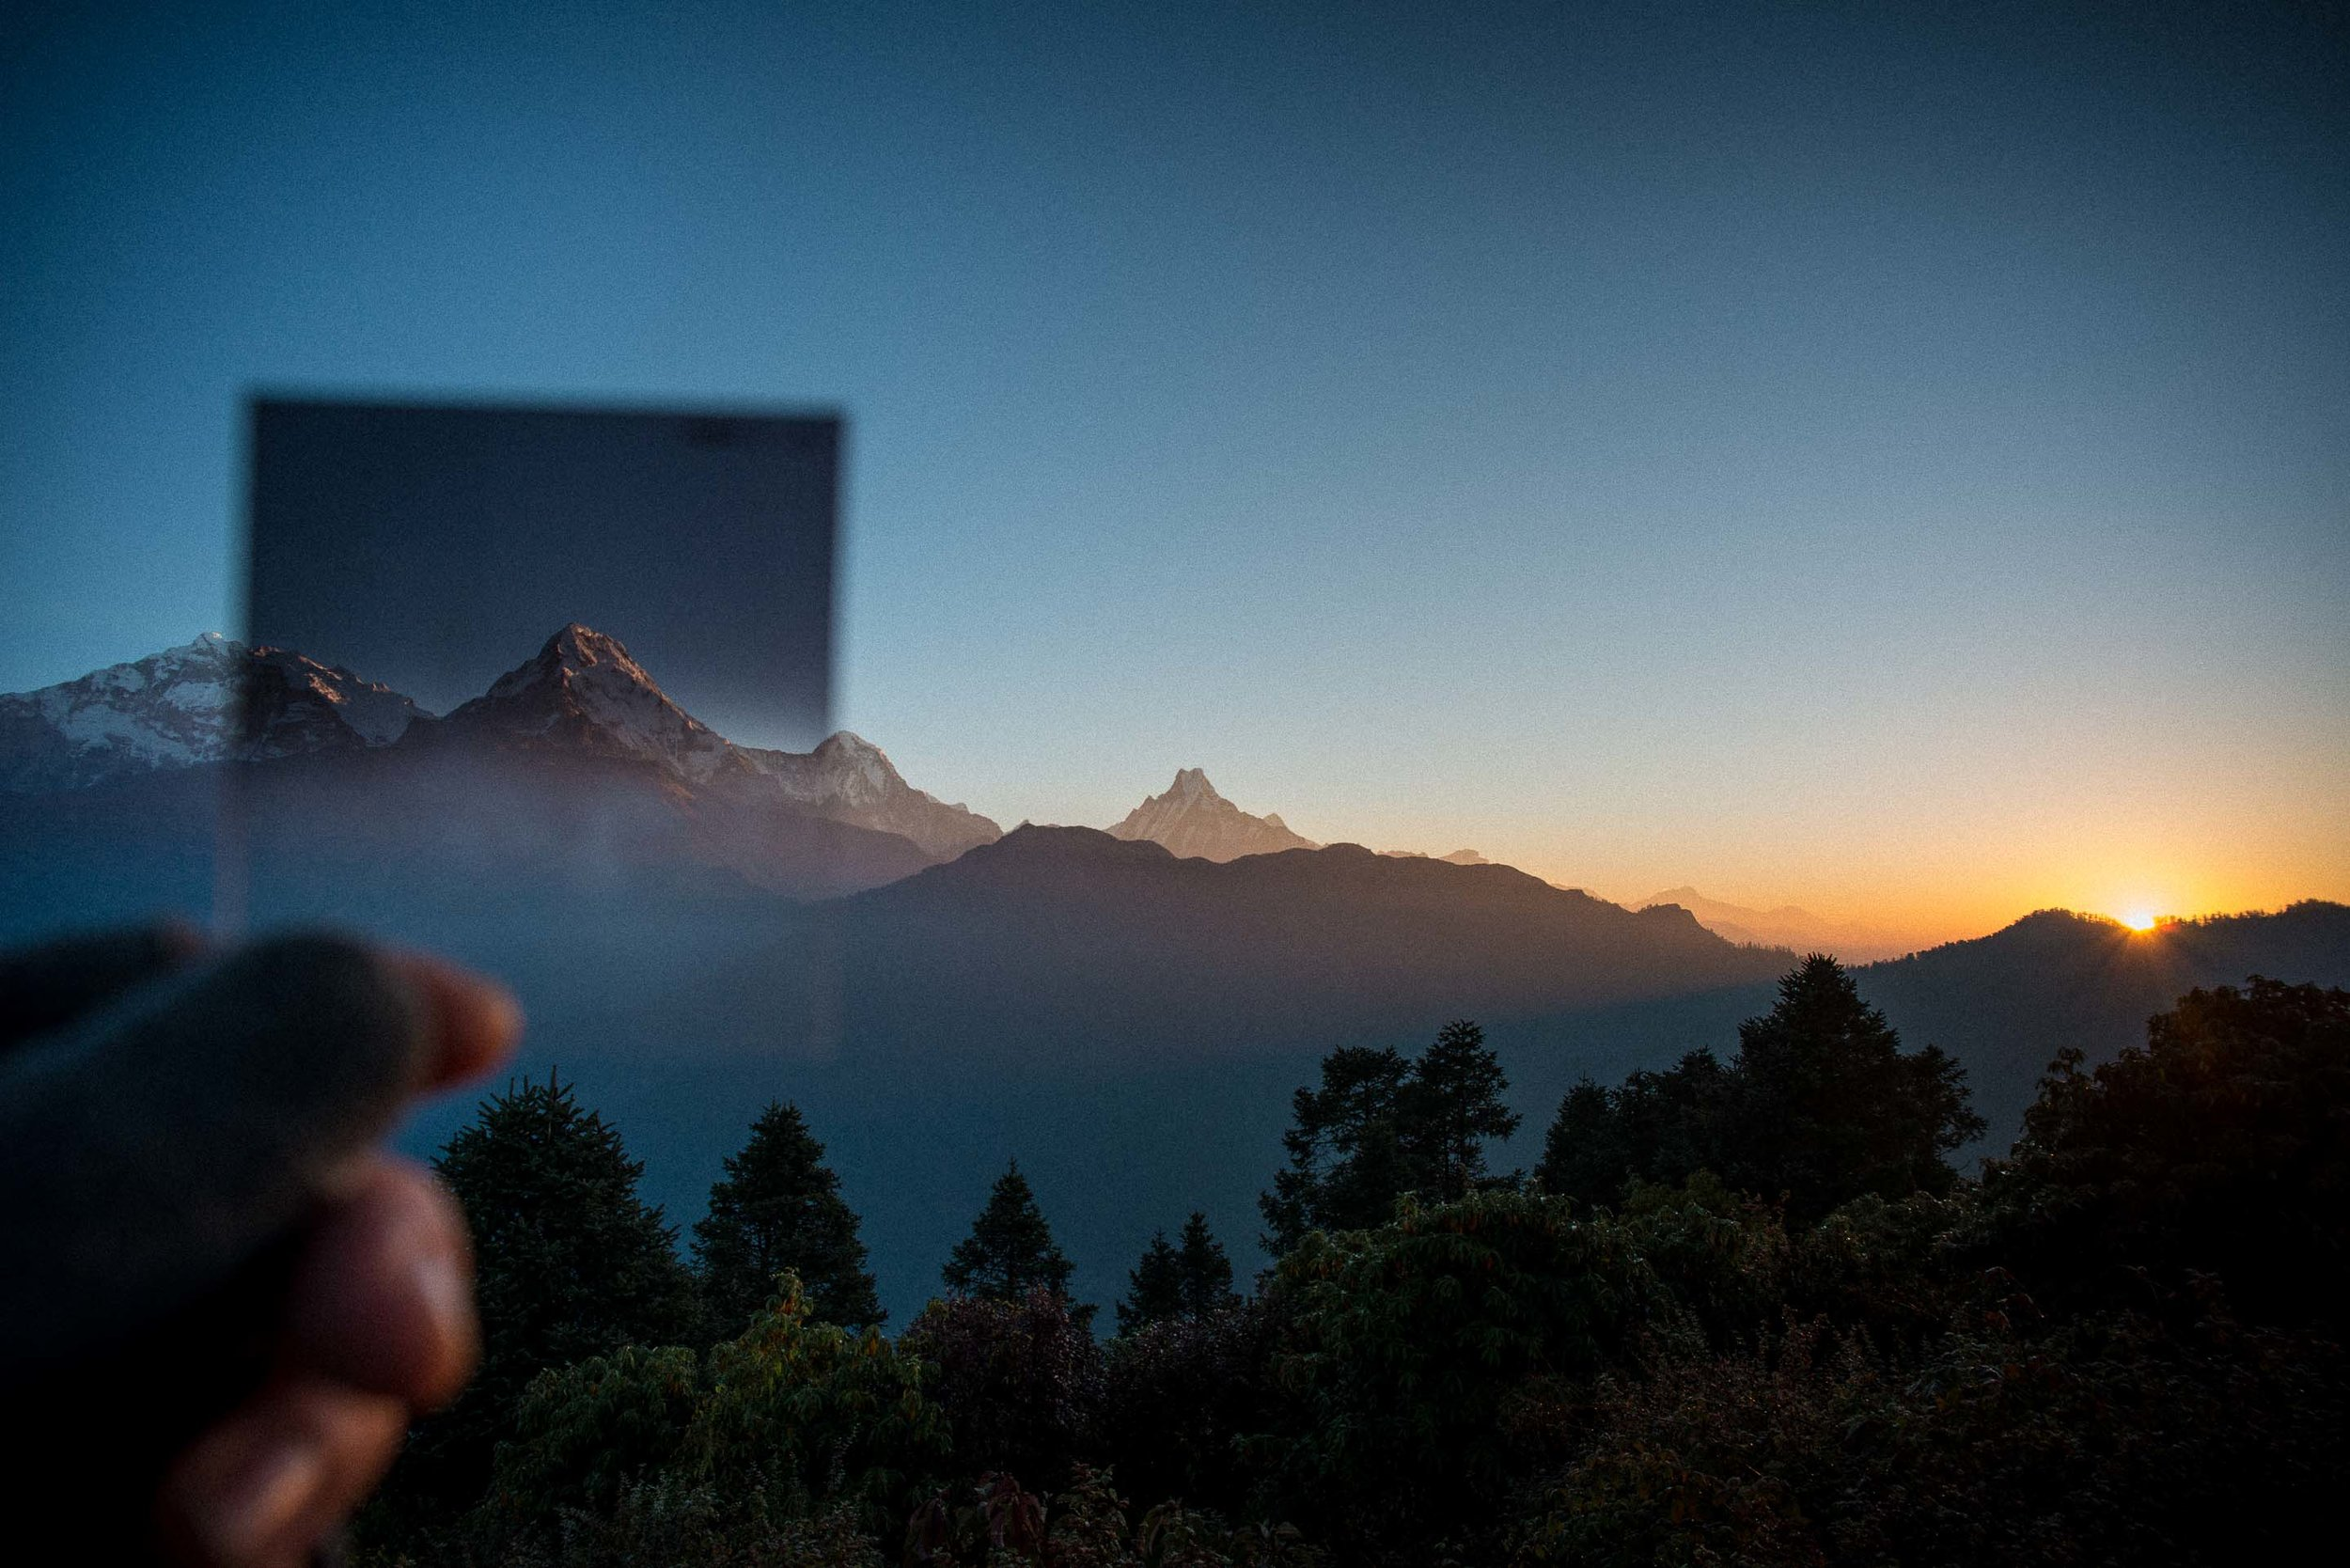 The most amazing sunrise of my life - The Himalayas, Nepal